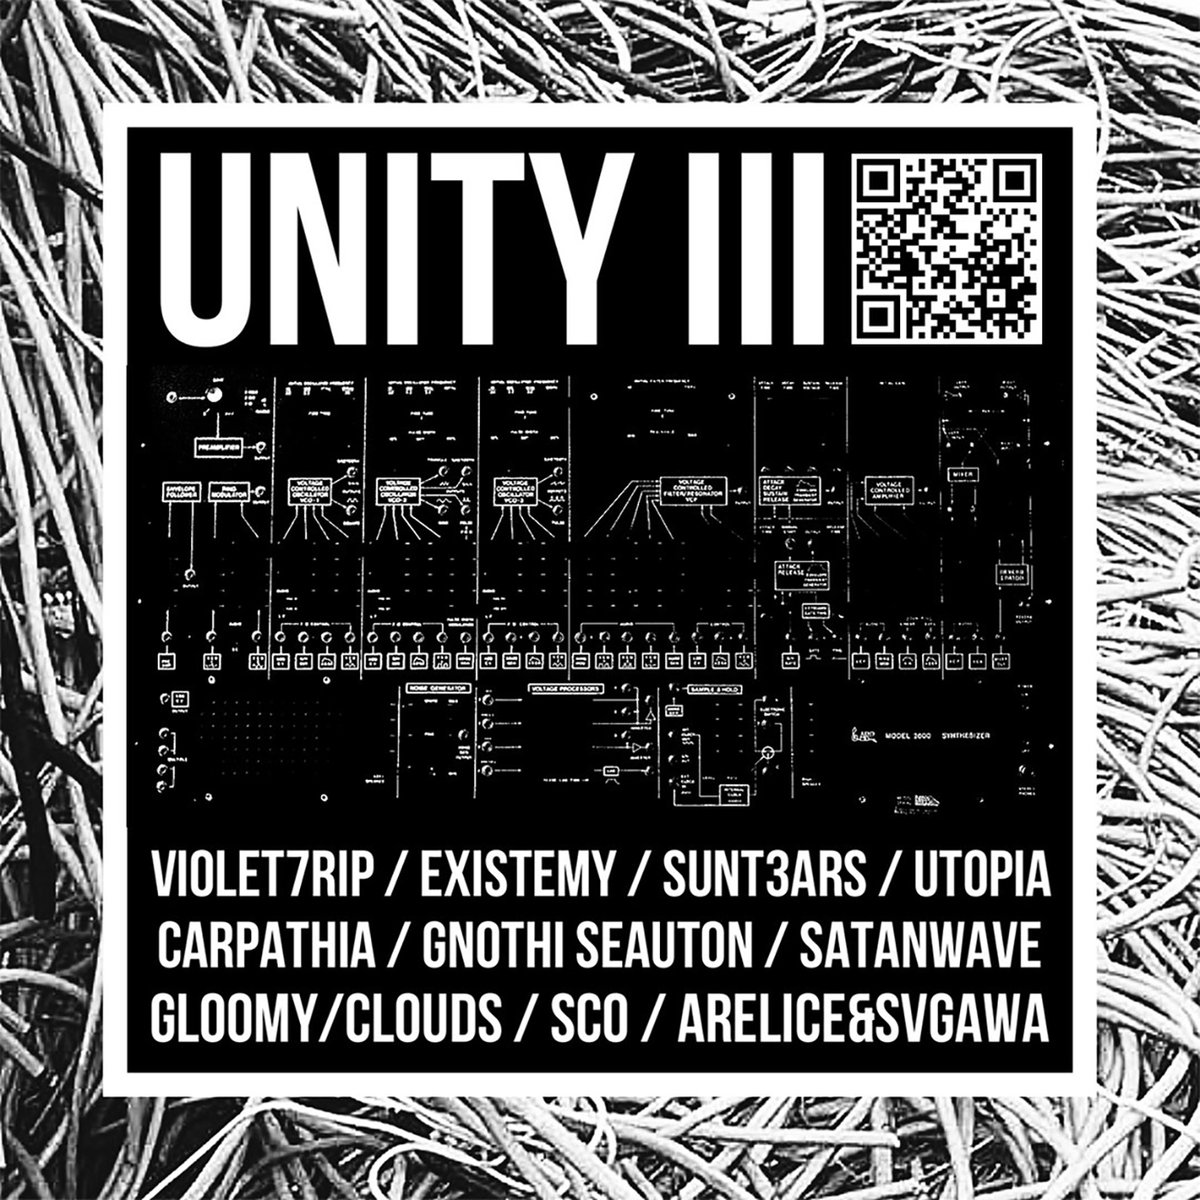 satanwave - Hollow @ 'Various Artists - UNITY III' album (electronic, experimental)